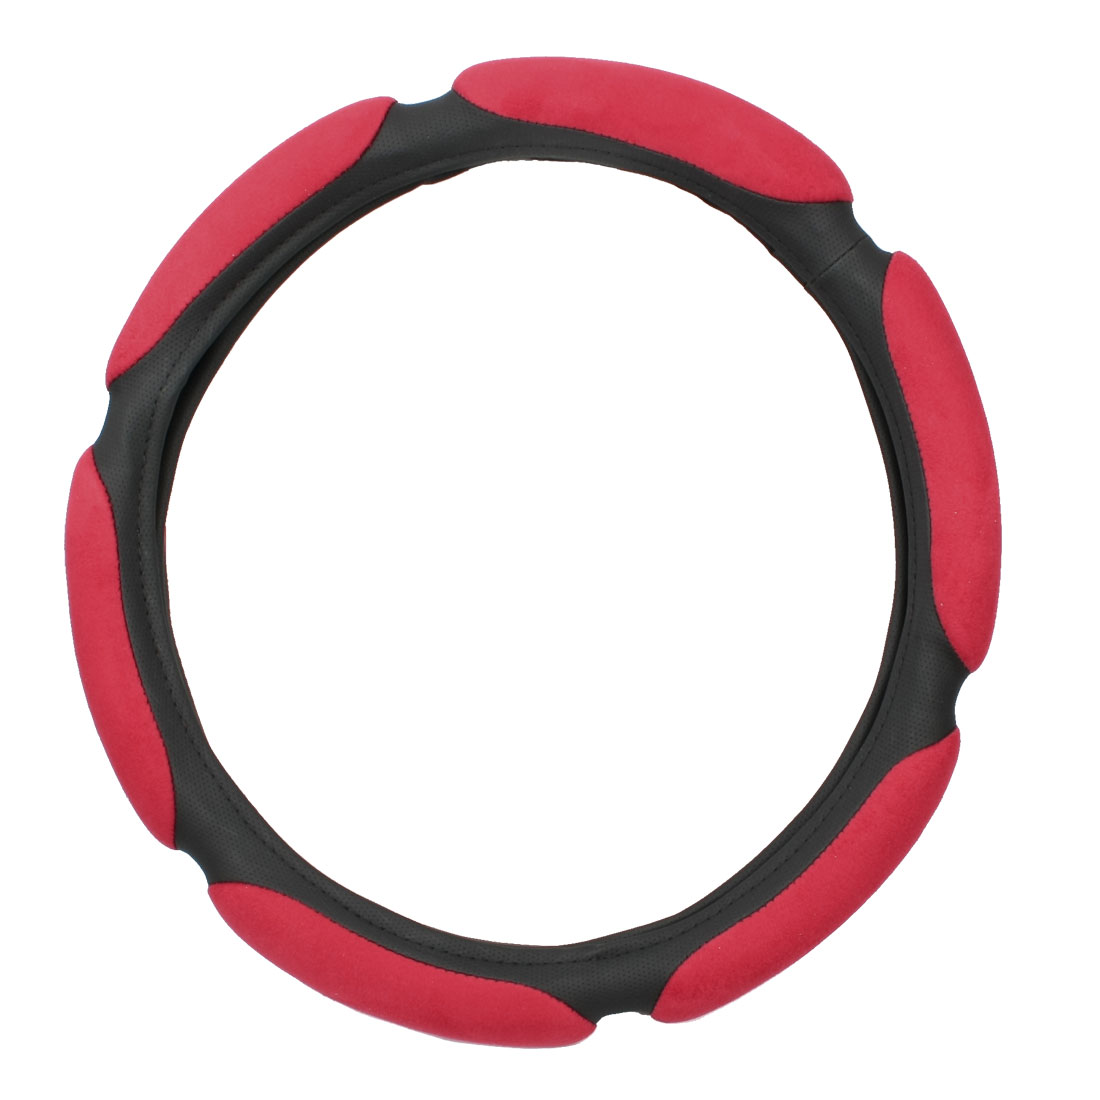 Red Plush Black Faux Leather 3D Steering Wheel Cover Protection for Truck Car